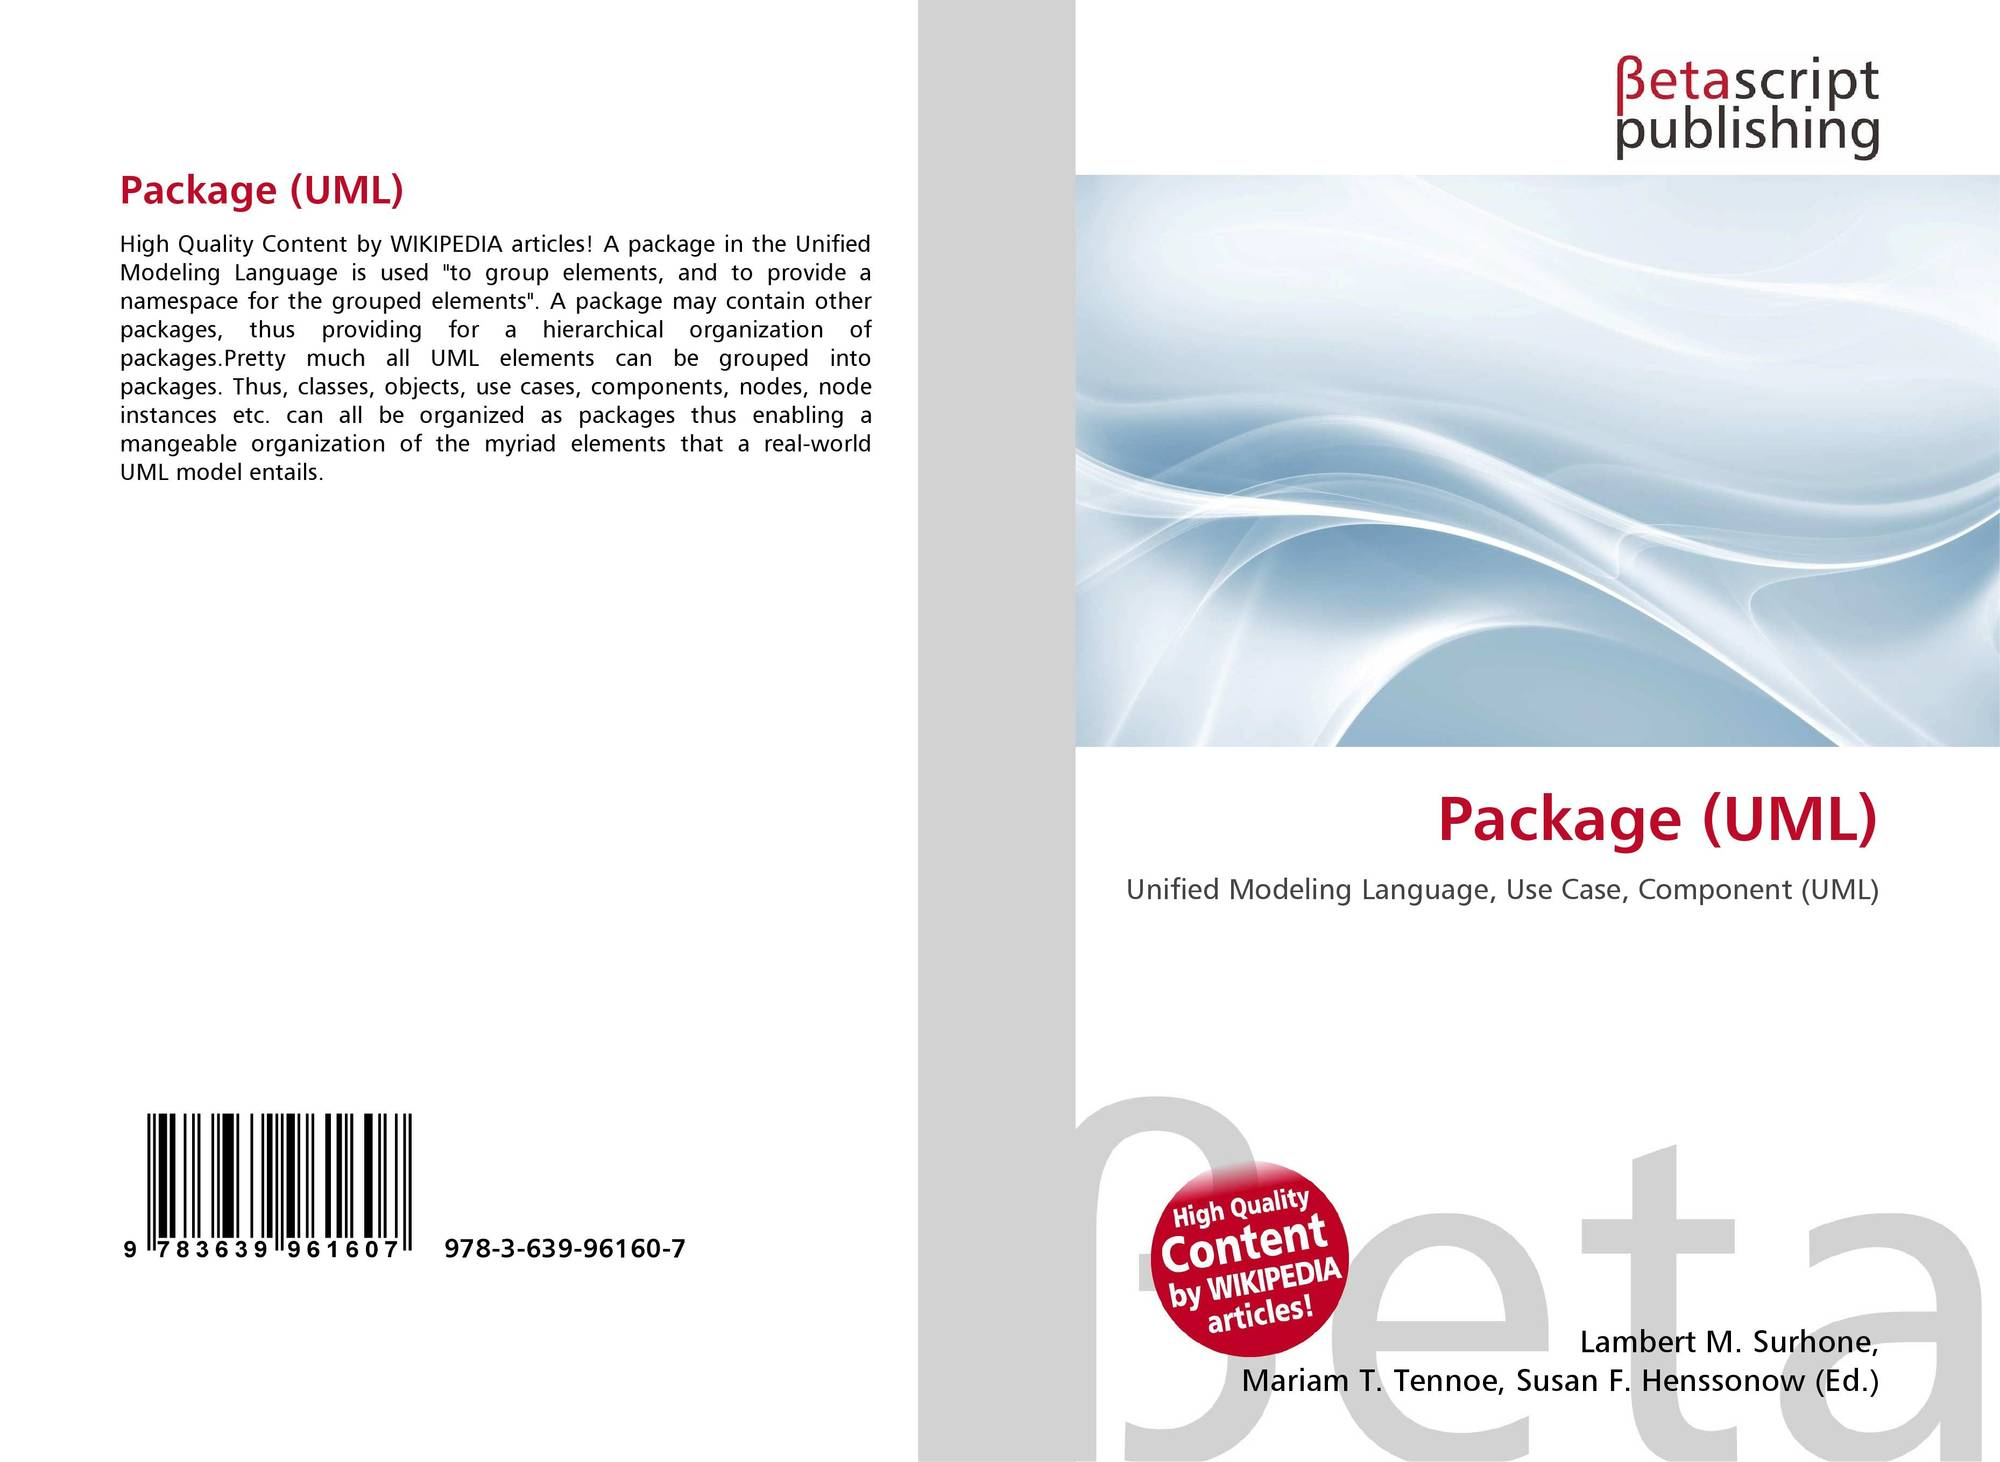 Package uml 978 3 639 96160 7 3639961609 9783639961607 9783639961607 ccuart Choice Image